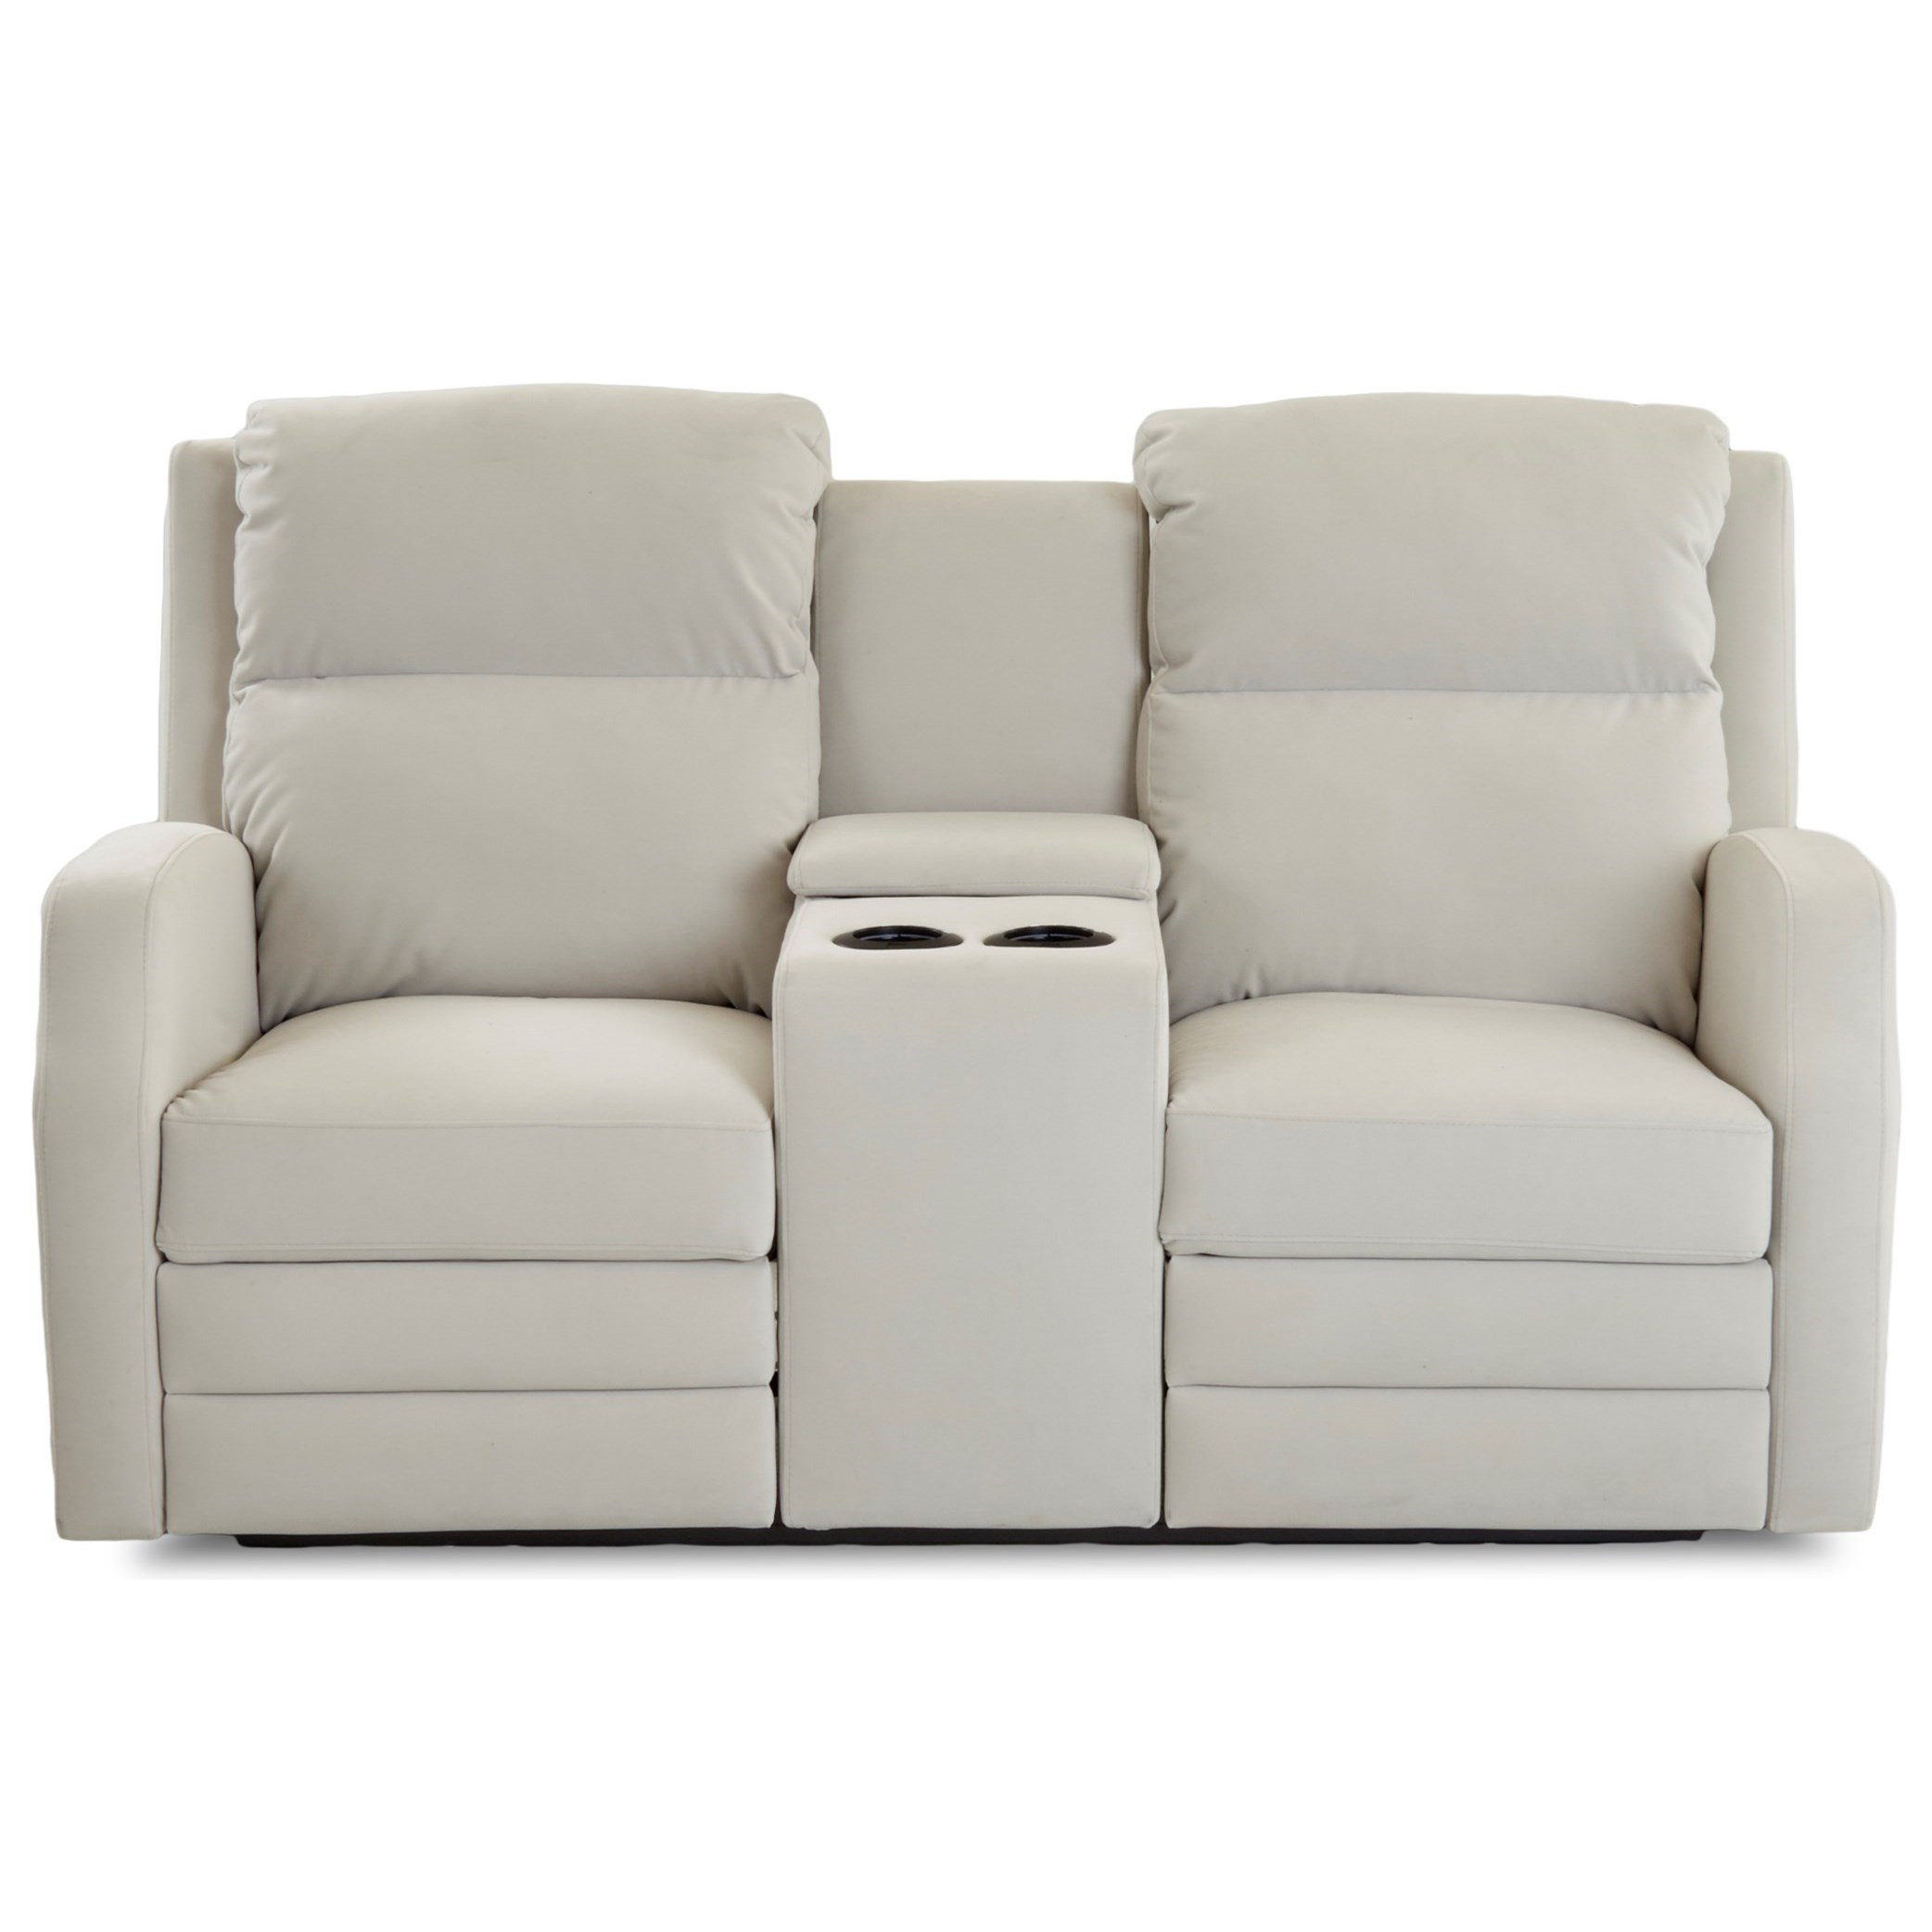 Kamiah Pwr Console Reclining Loveseat w/ Pwr Head by Klaussner at Lapeer Furniture & Mattress Center